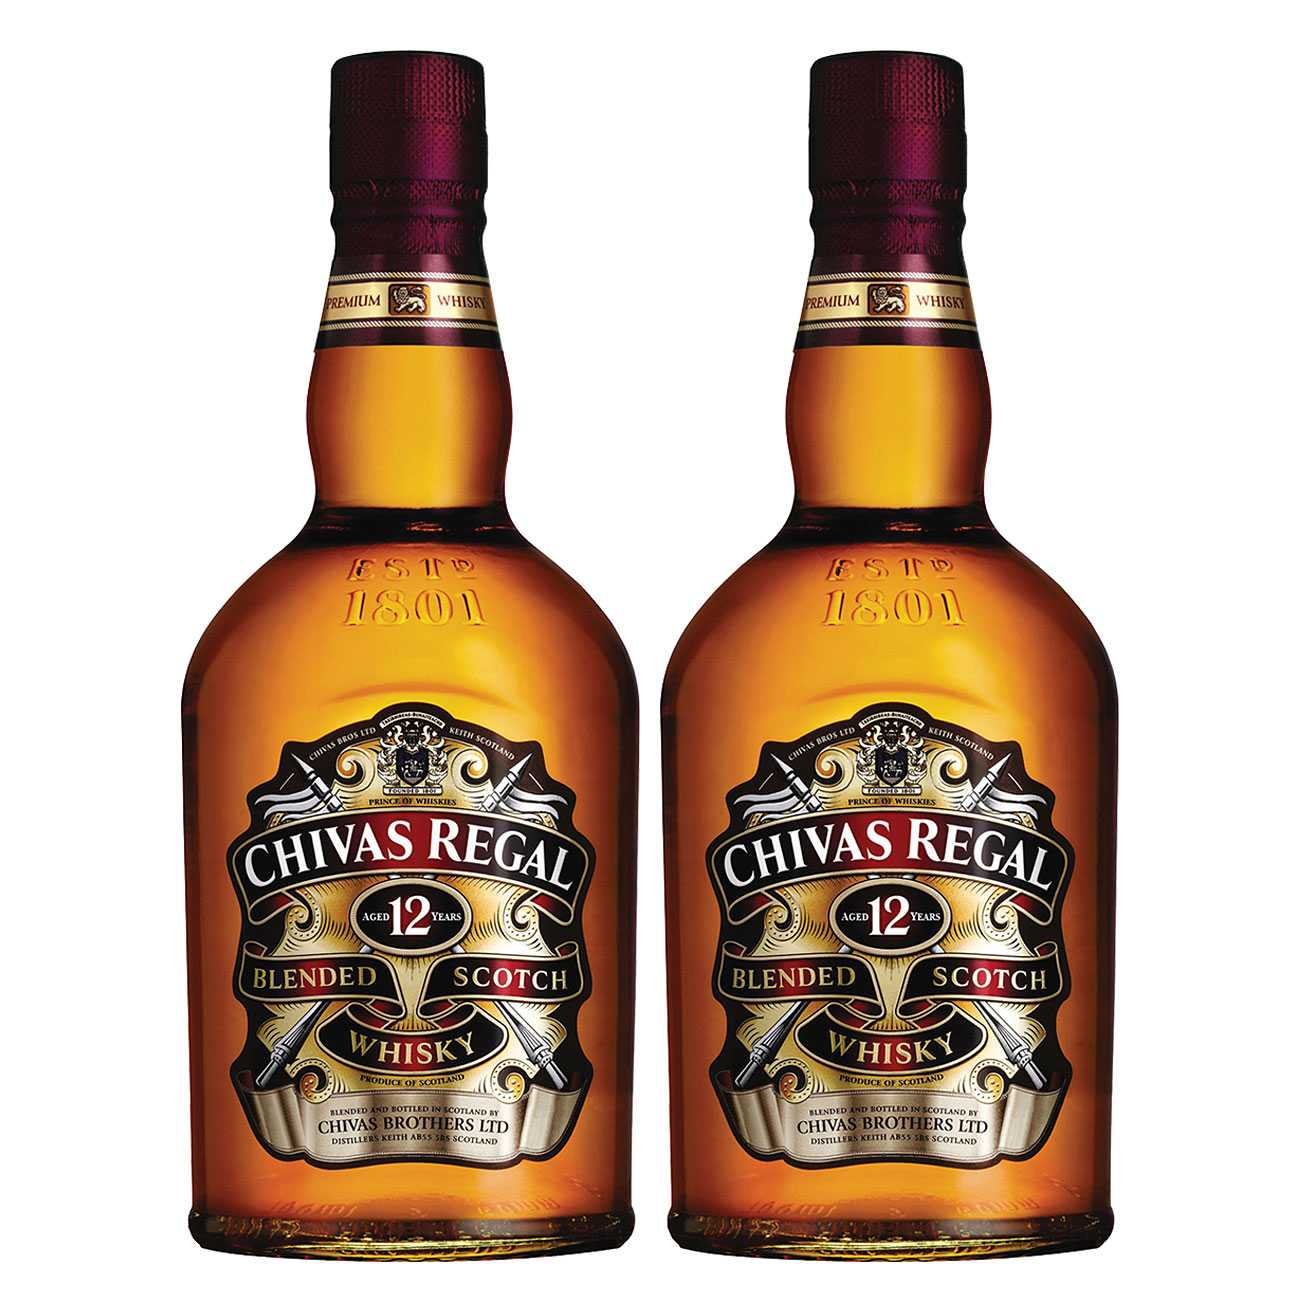 Whisky scotian, 12 YEAR OLD 2000 ML, Chivas Regal